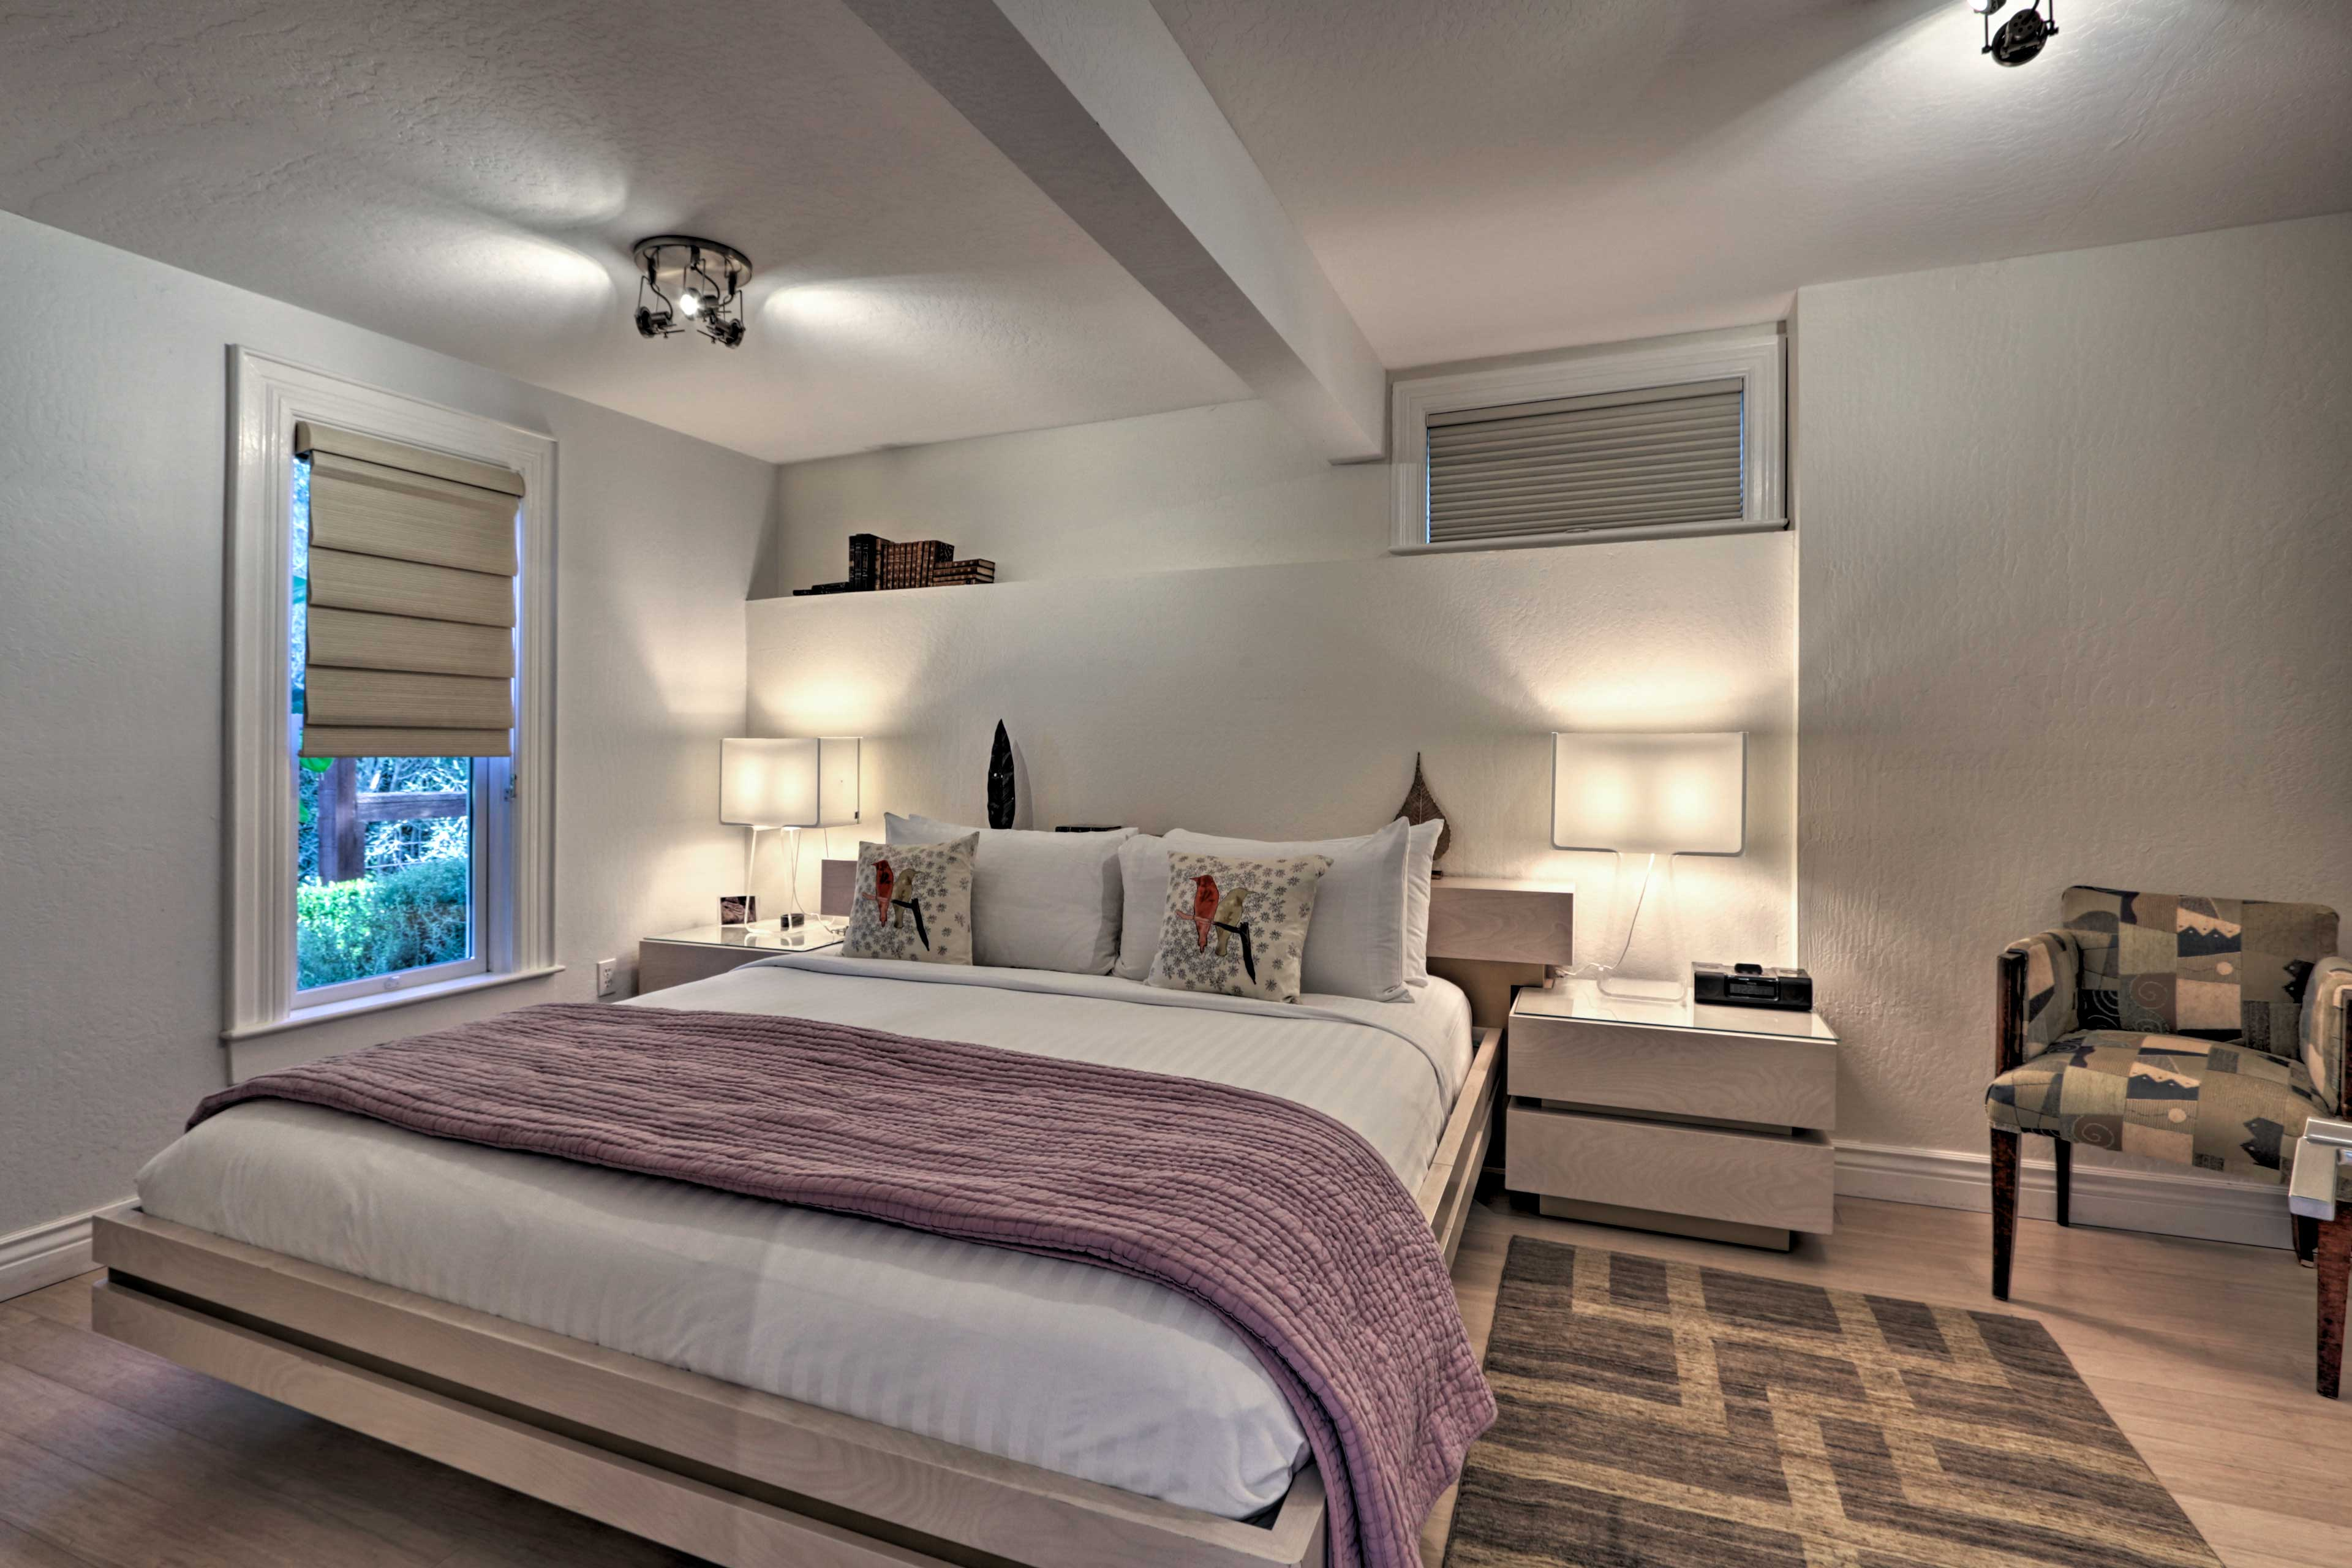 Cozy up in one of 7 inviting bedrooms for a good night's rest.